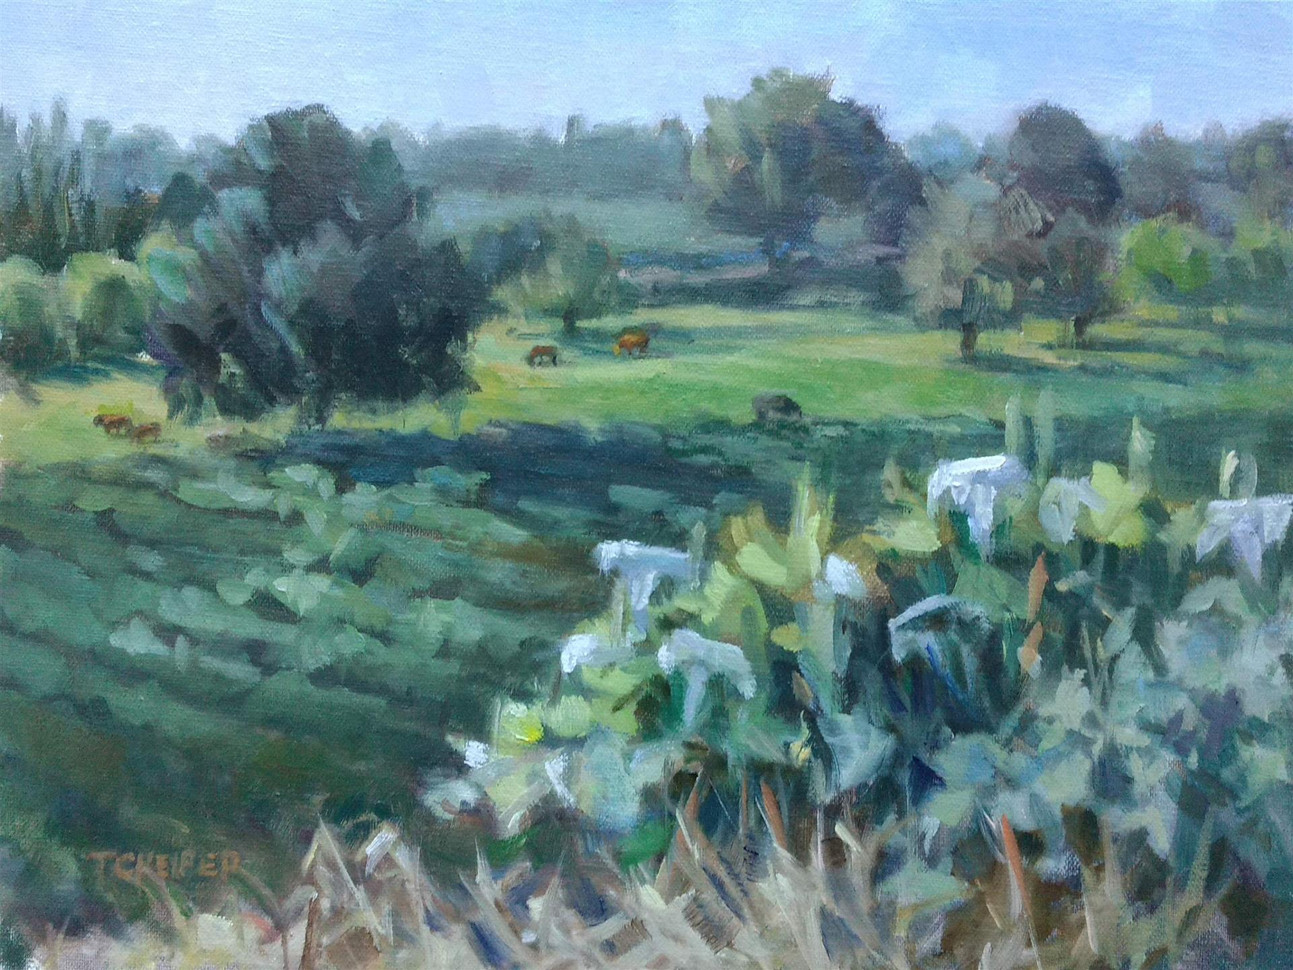 "Tamara Keiper (Waterford), Vineyard Vista with Cattle, 2020 Oil painting, 9"" x 12"" $1,200"